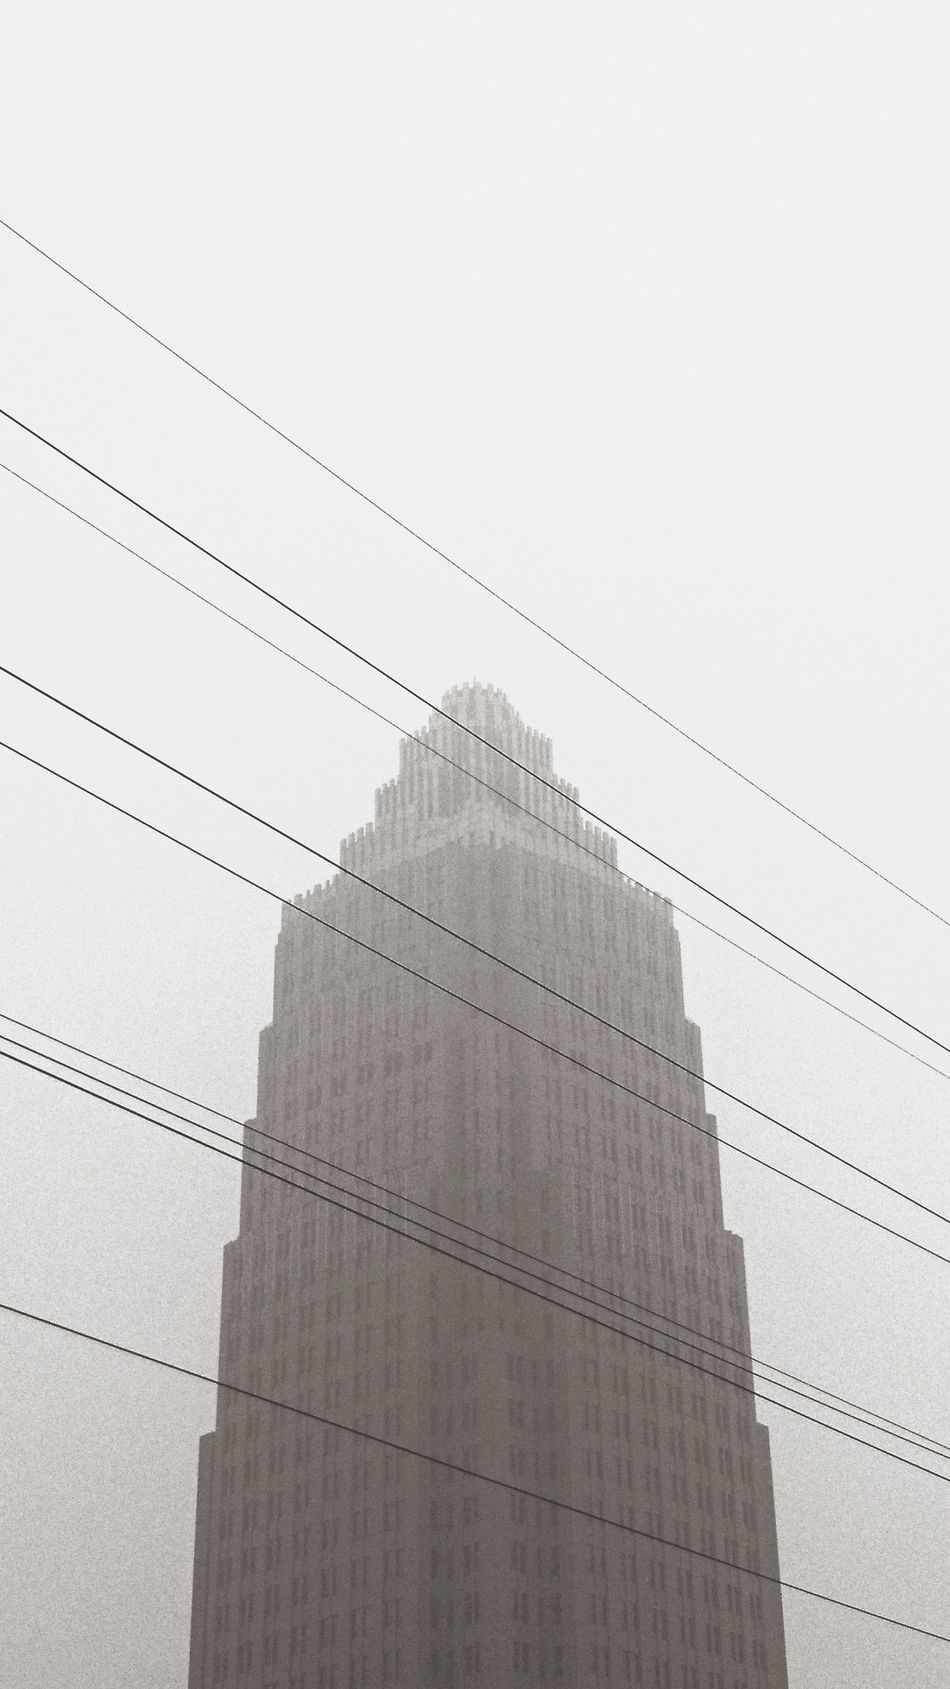 No People Cityscape City Tower EyeEm Best Shots Foggy Smog Smog In The Sky China Architecture Built Structure Building Energy Cable Minimalism Urban Urban Sky Sky High Low Angle View Energy Black & White Blackandwhite Electric Wire Electric Wires